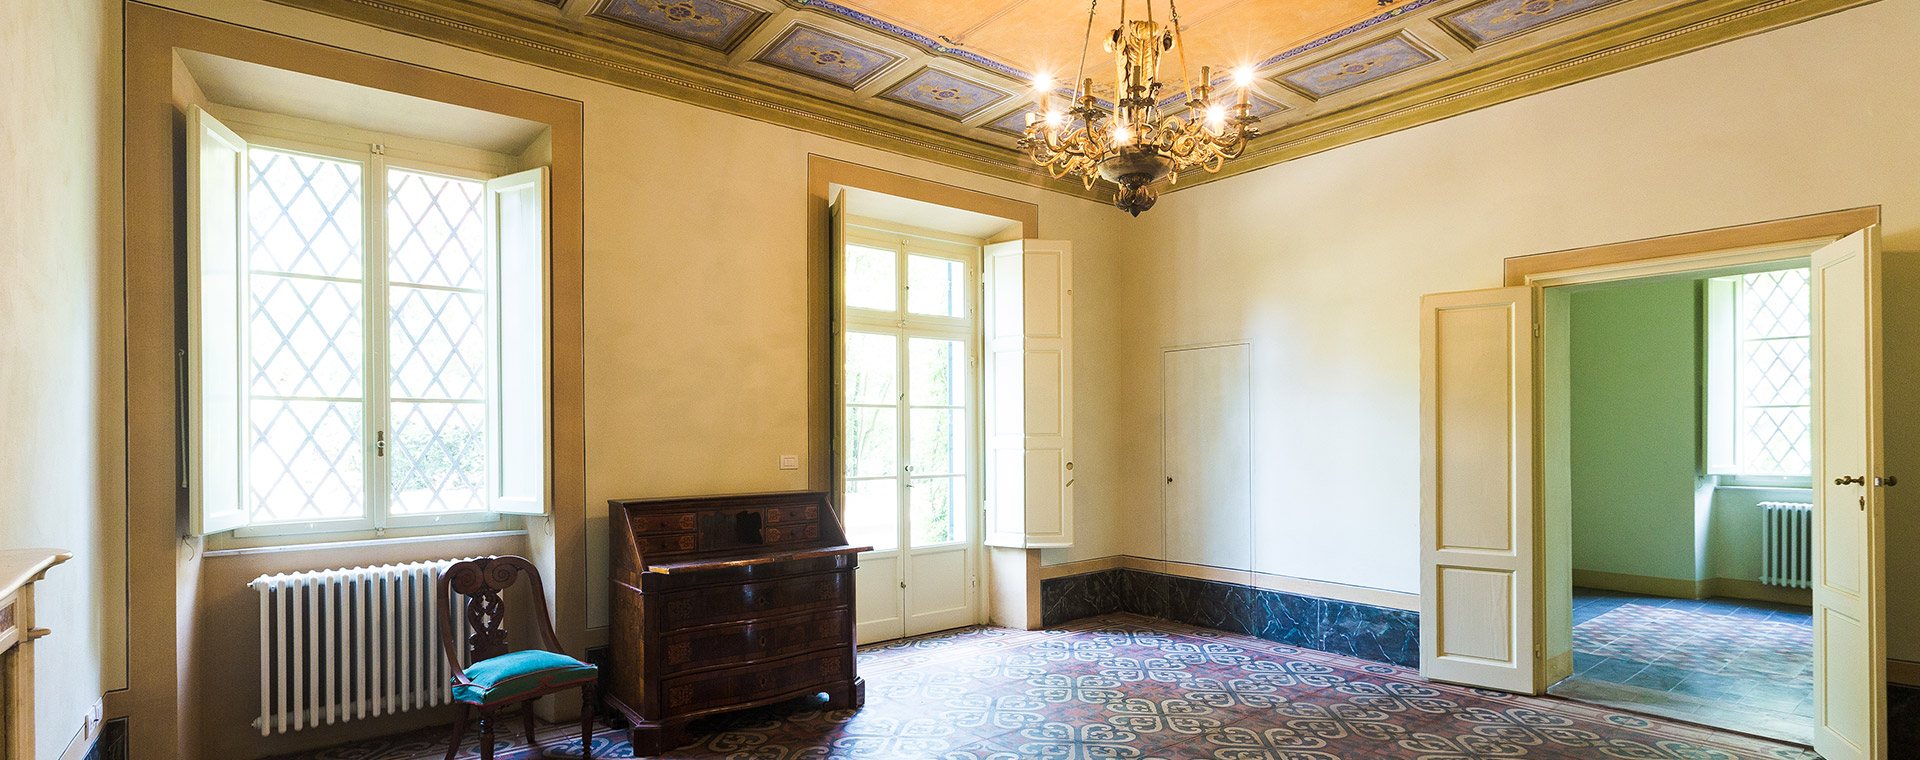 18th century villa for sale